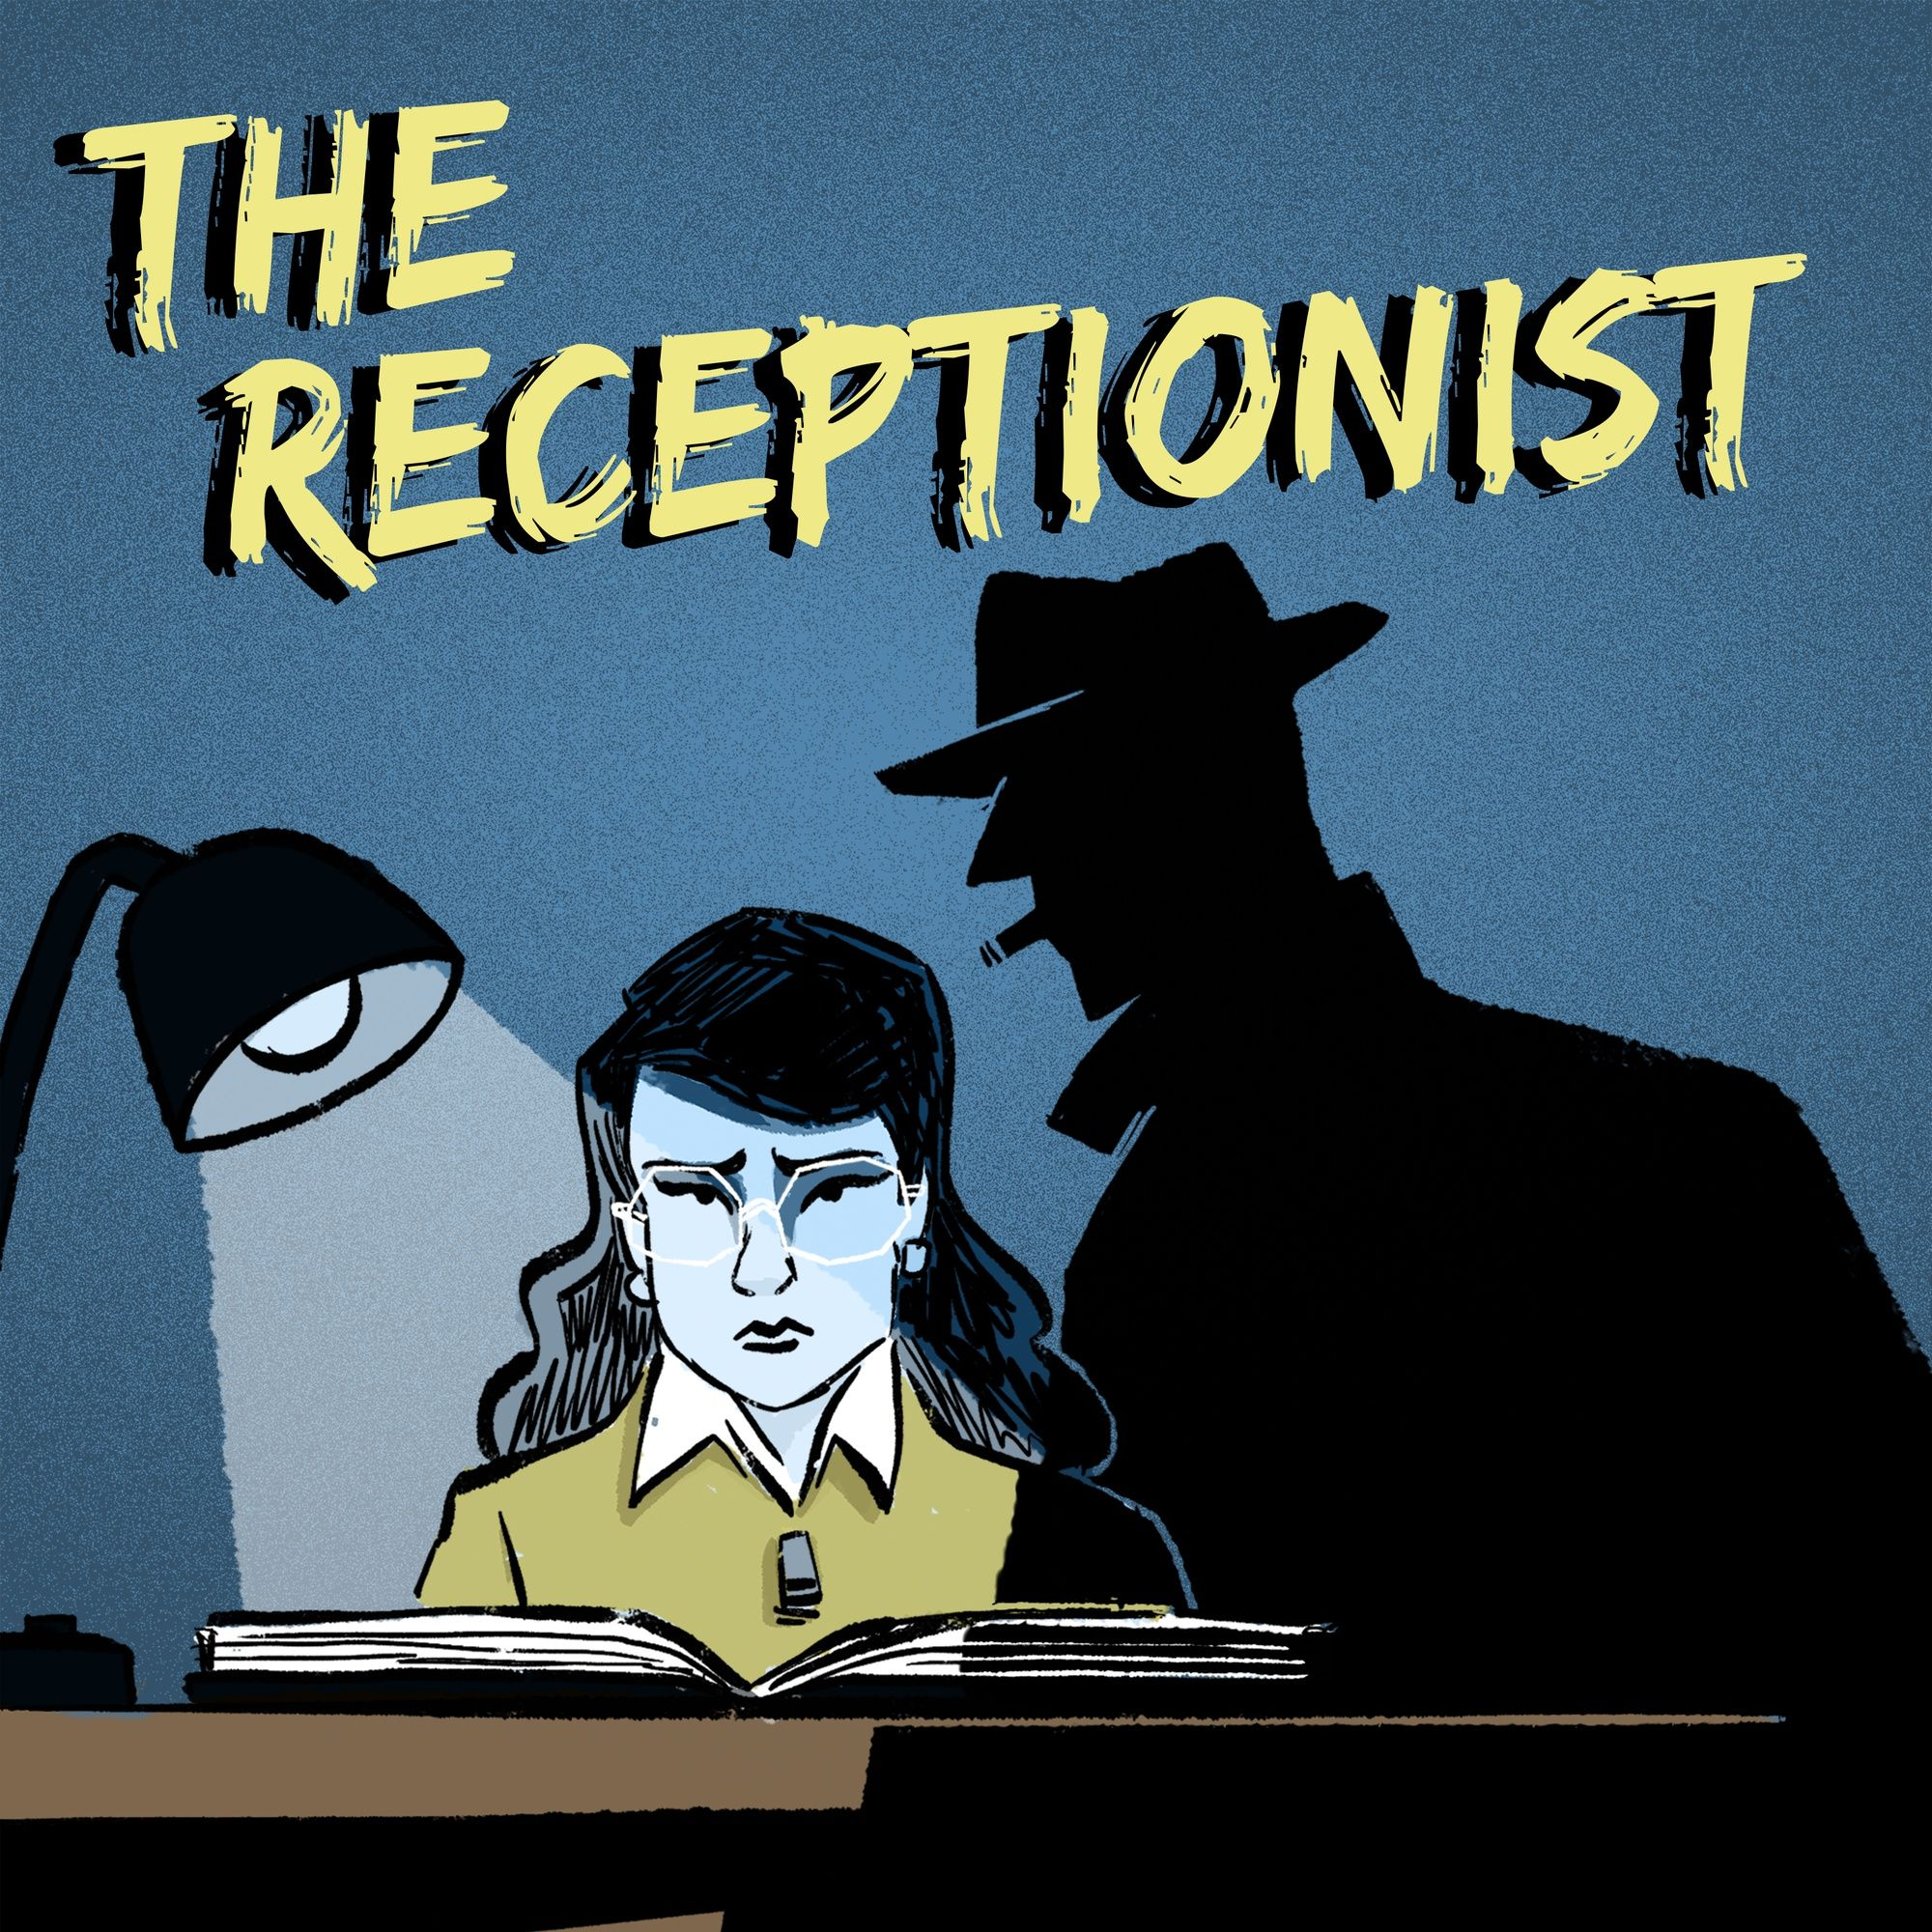 The Receptionist (Chapter 5 of MITGR)